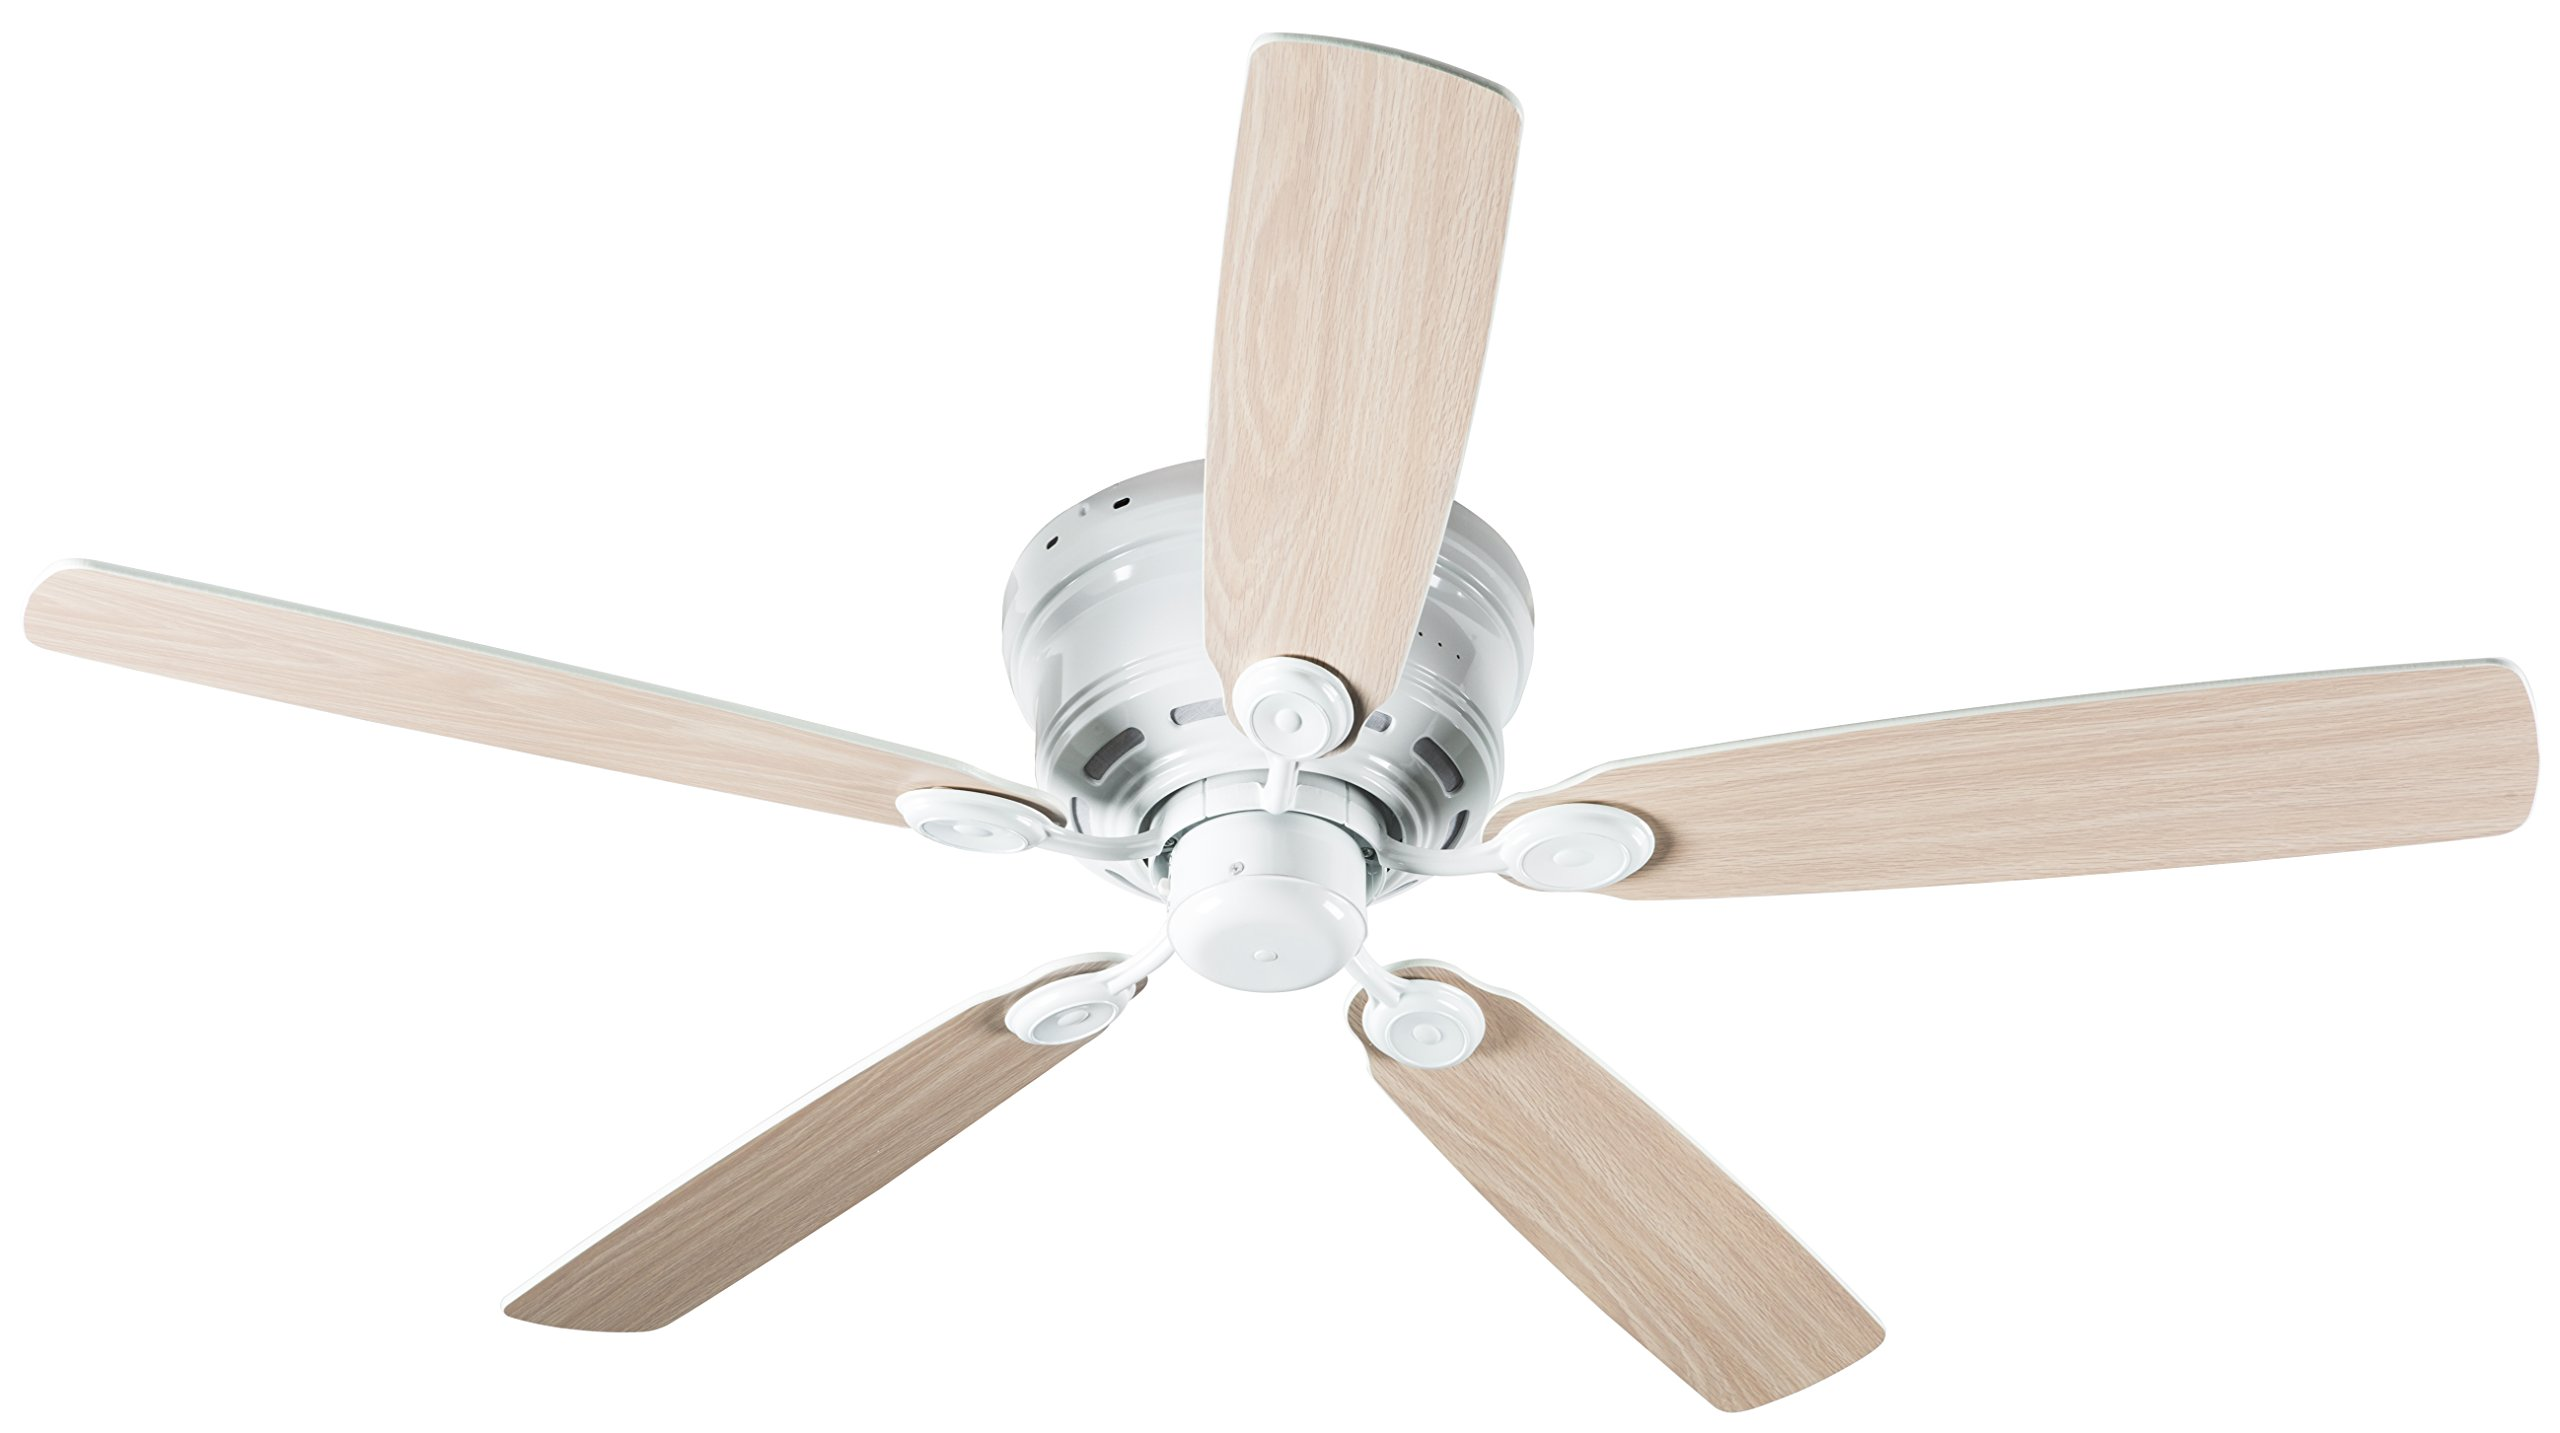 Hyperikon Remote Control Ceiling Fan, 52-Inch Light Wood White Ceiling Fan - White Fixture with Five Reversible Blades - Light Fixture Not Included